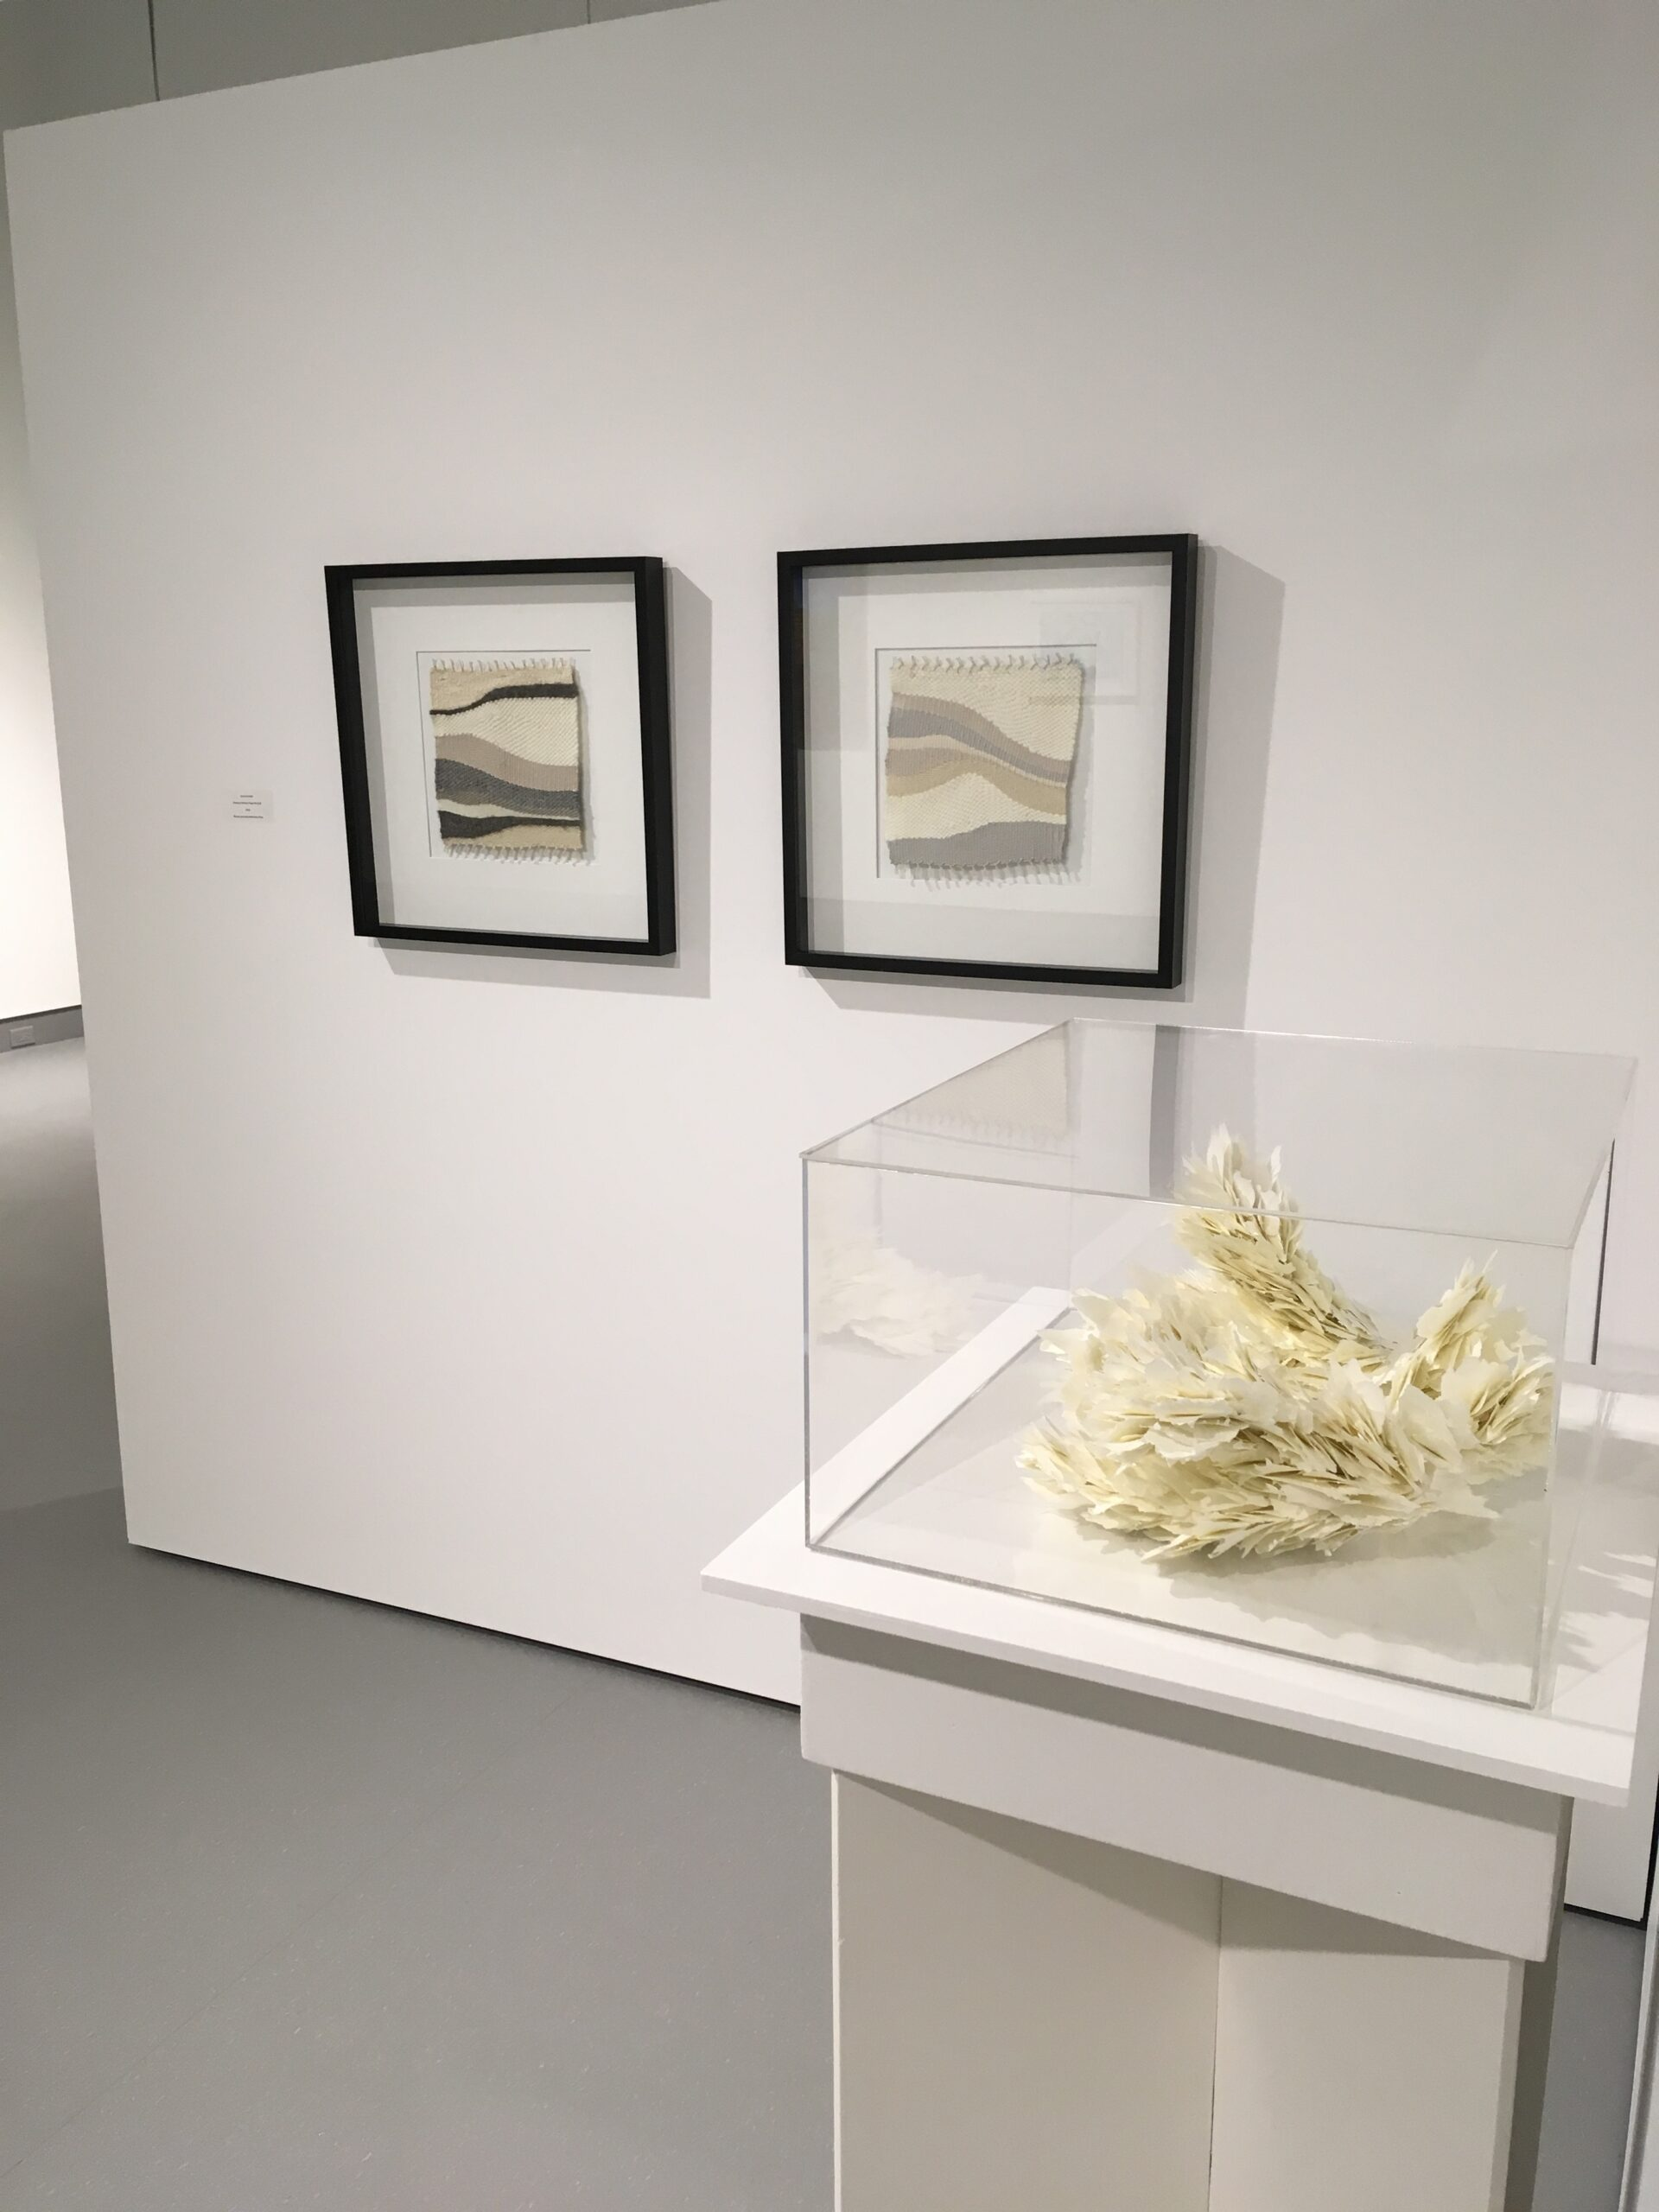 Pieces at Latcham art gallery